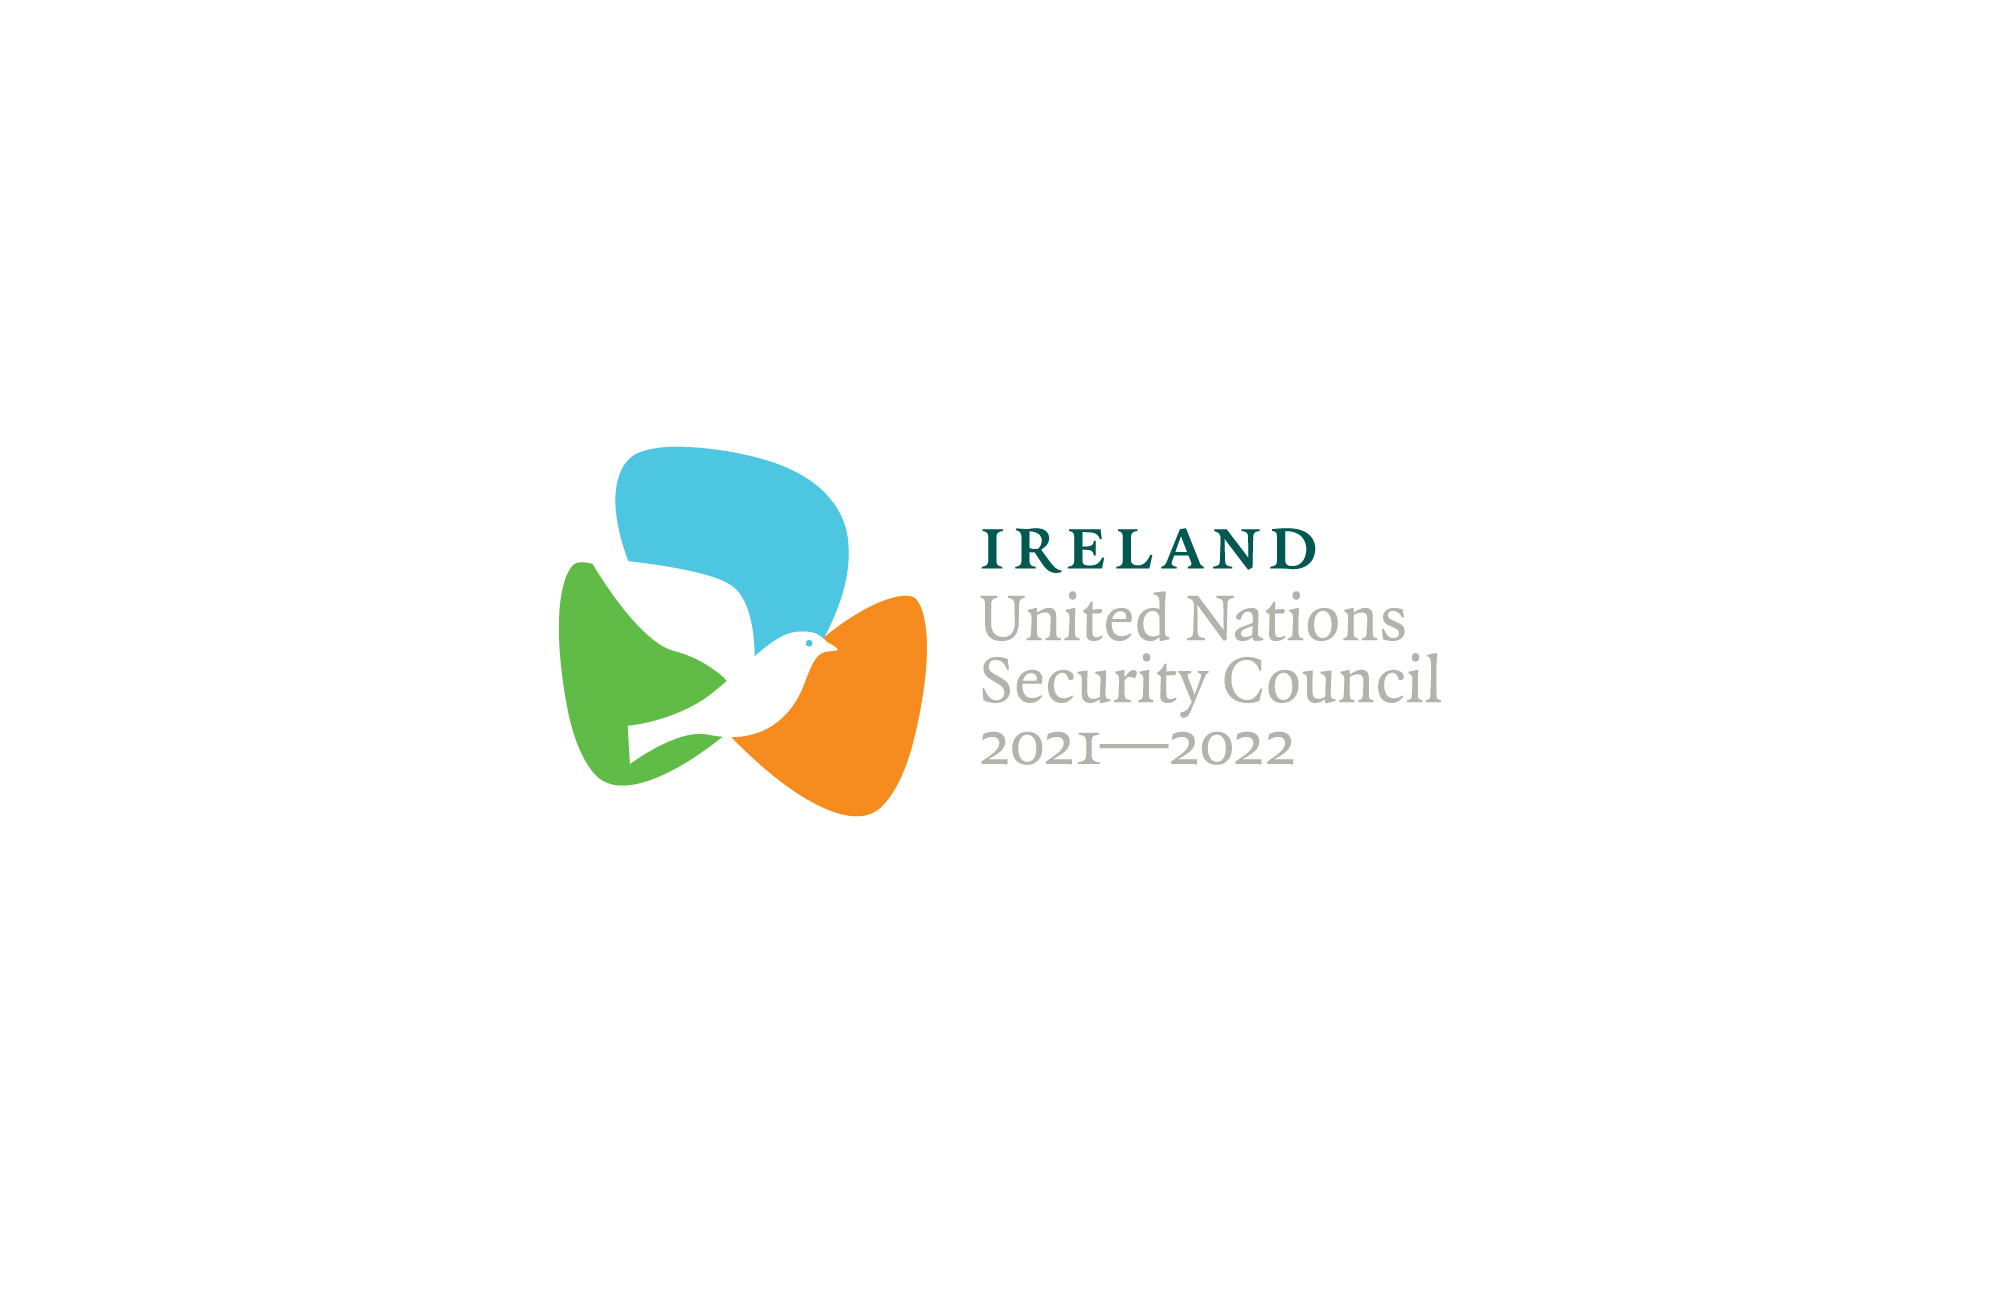 Cover image: Ireland's United Nations Security Council